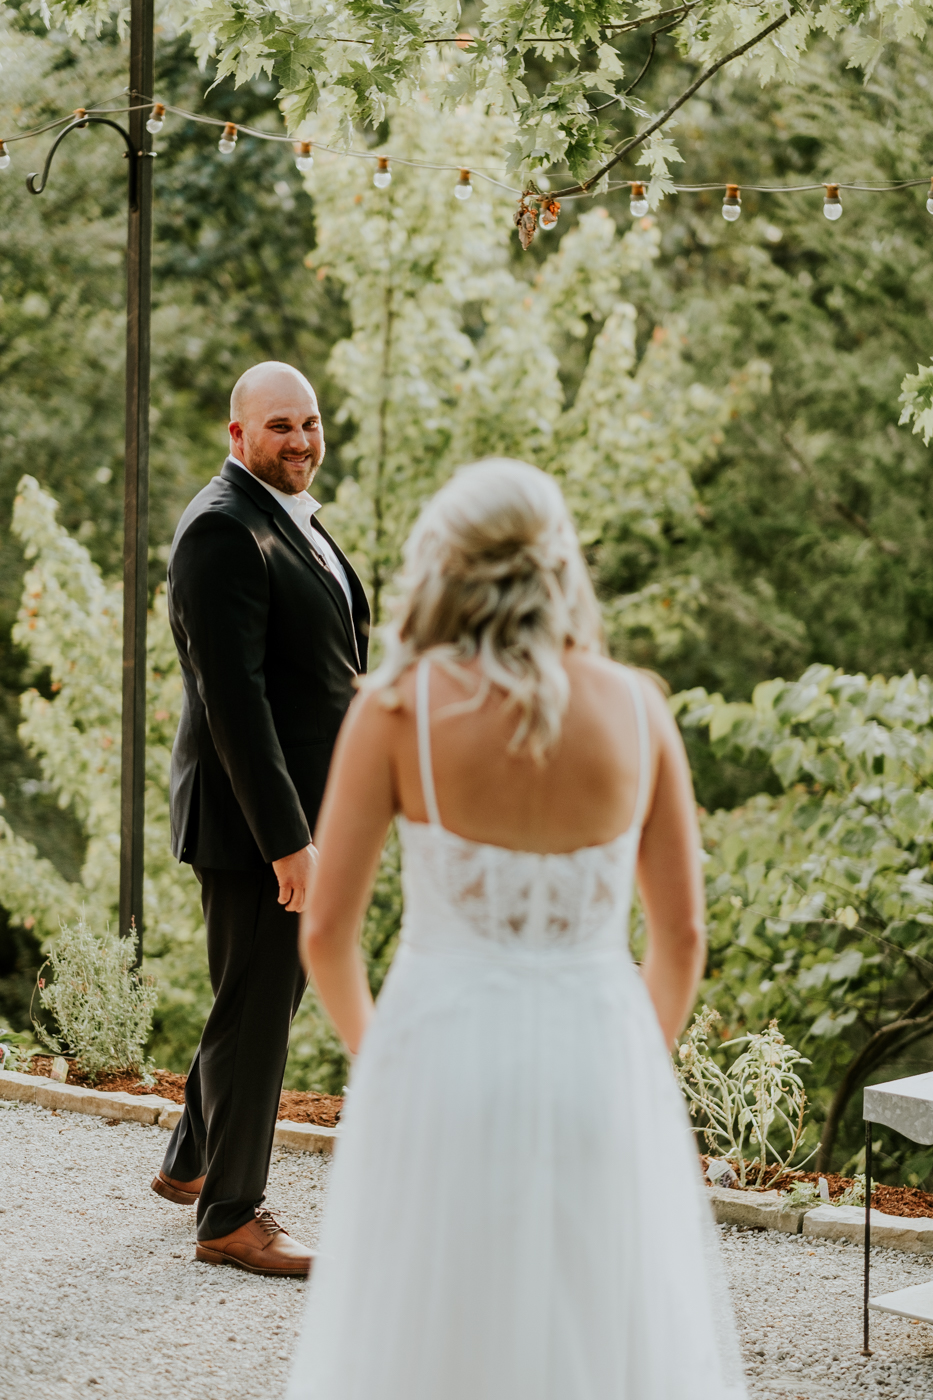 Haley+Kurtis.Blog©mileswittboyer.com2018-26.jpg